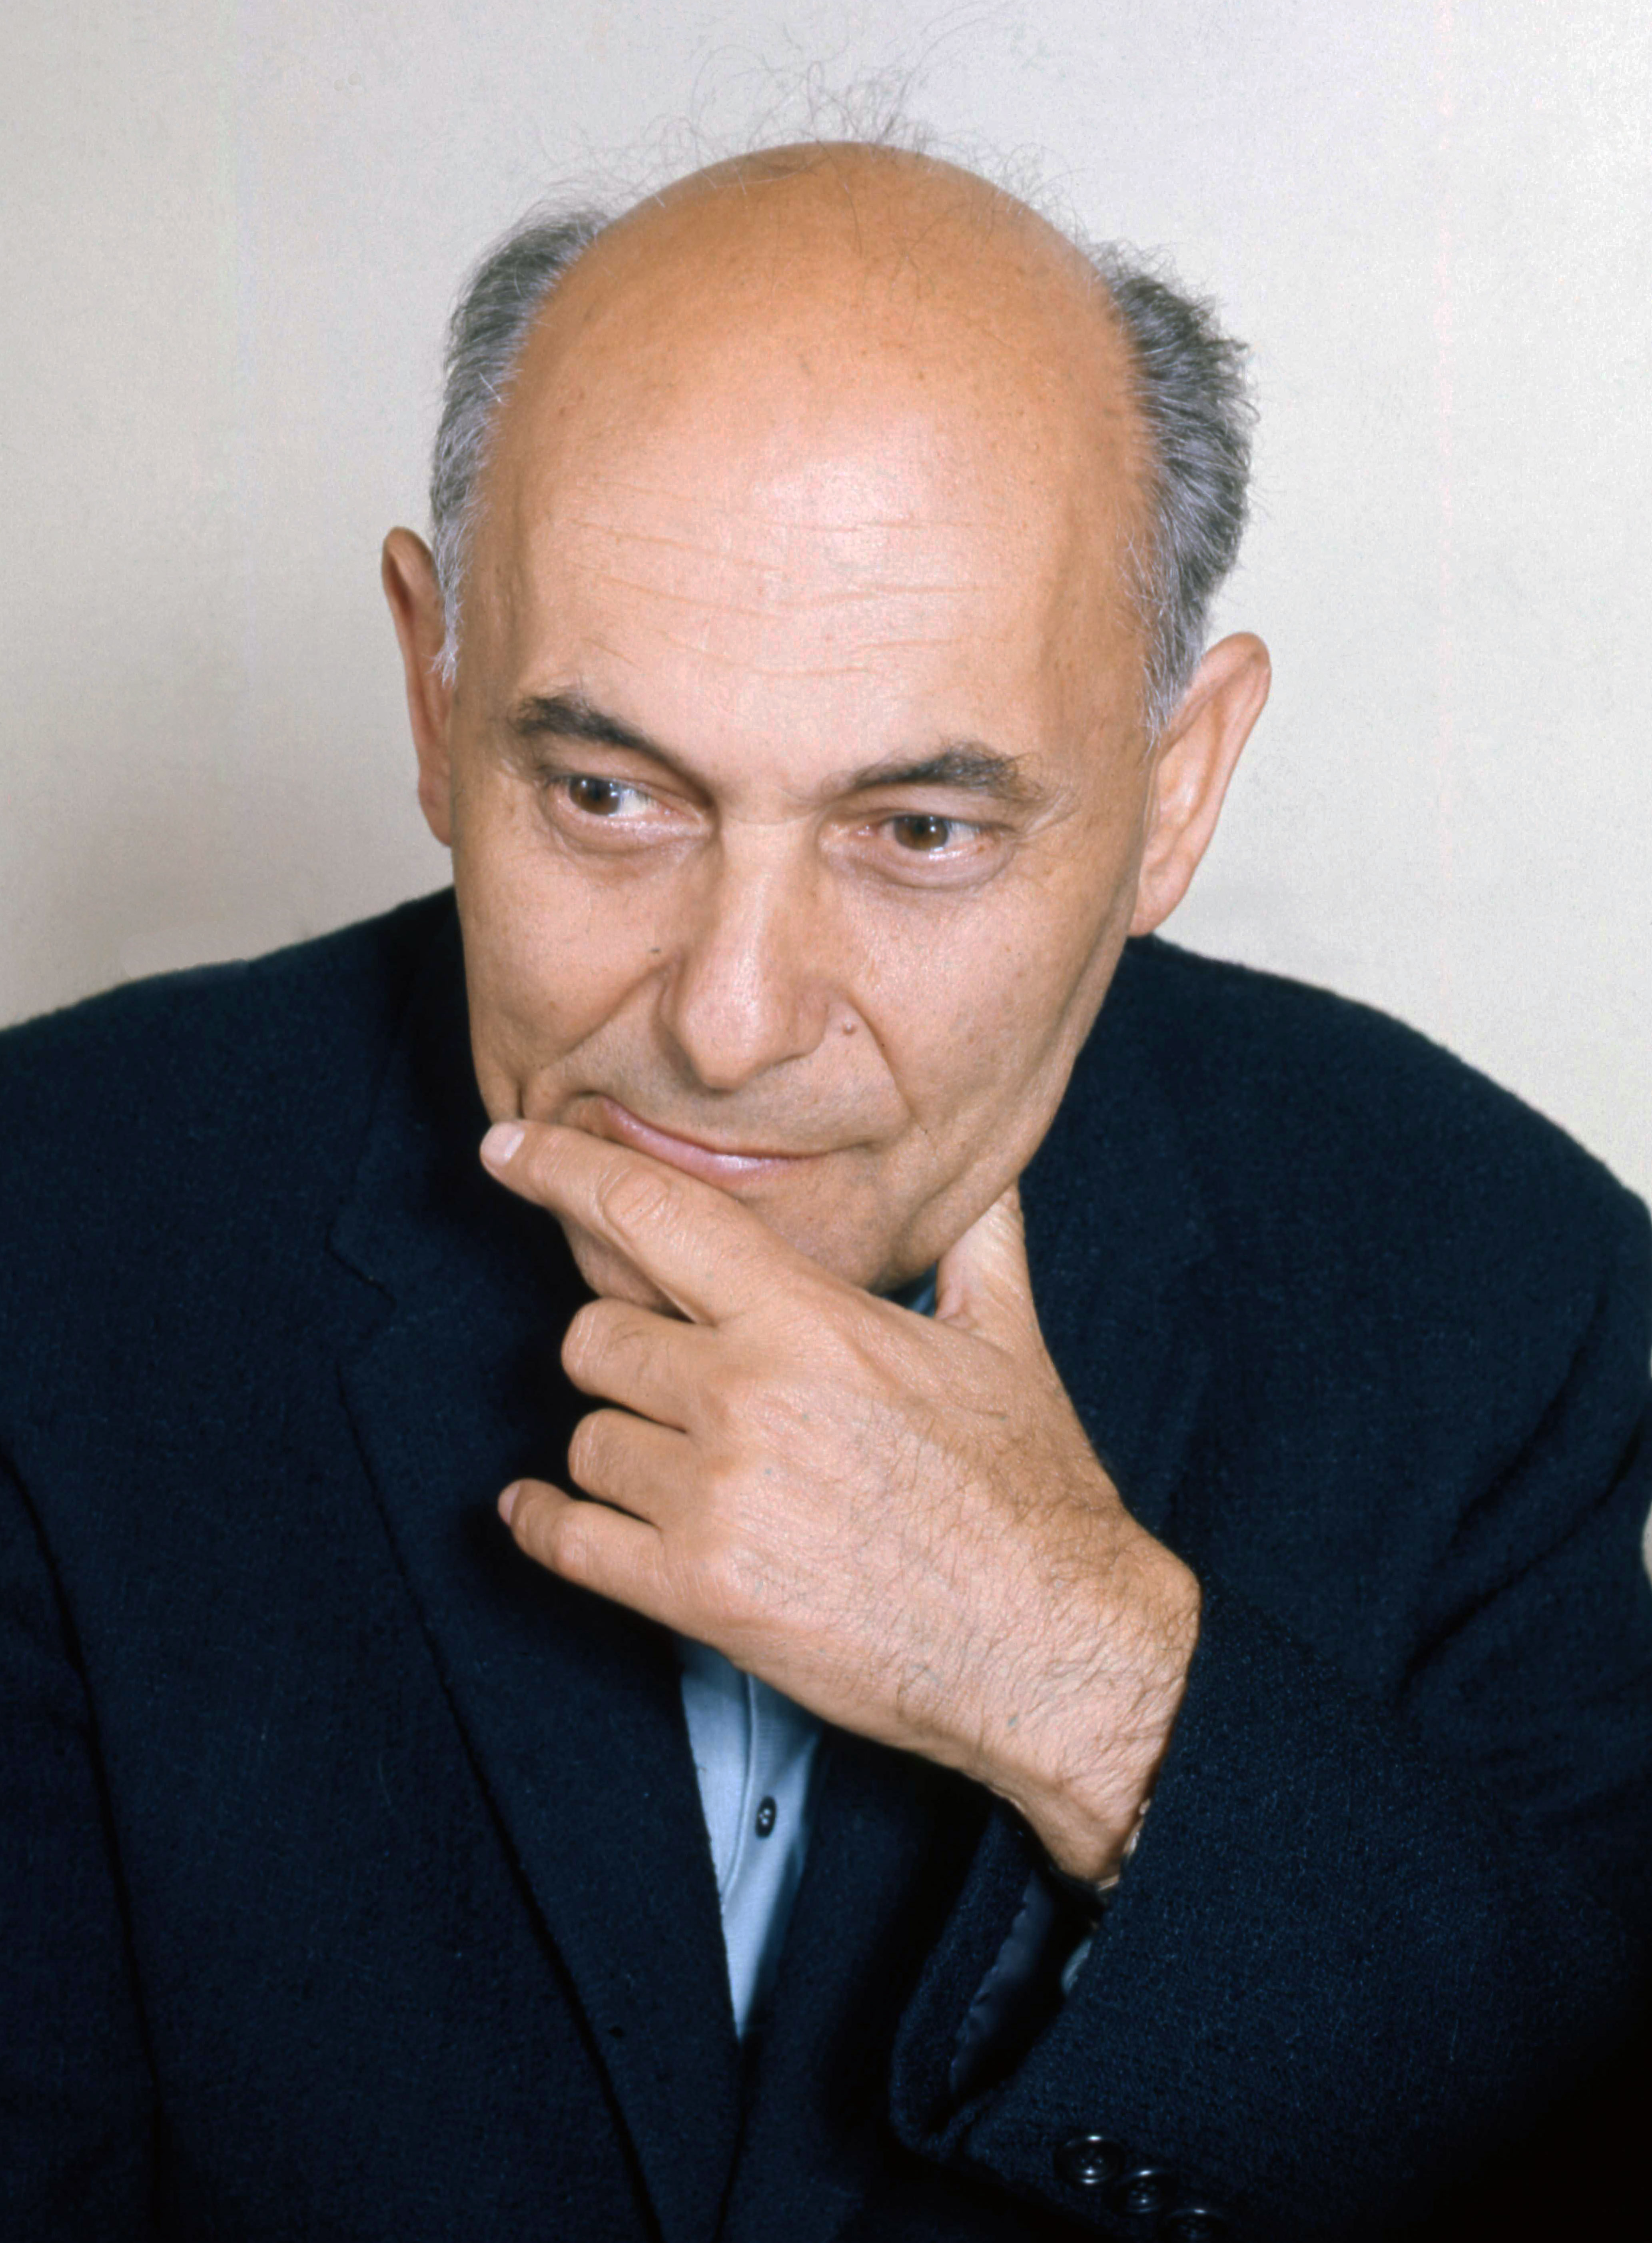 Depiction of Georg Solti